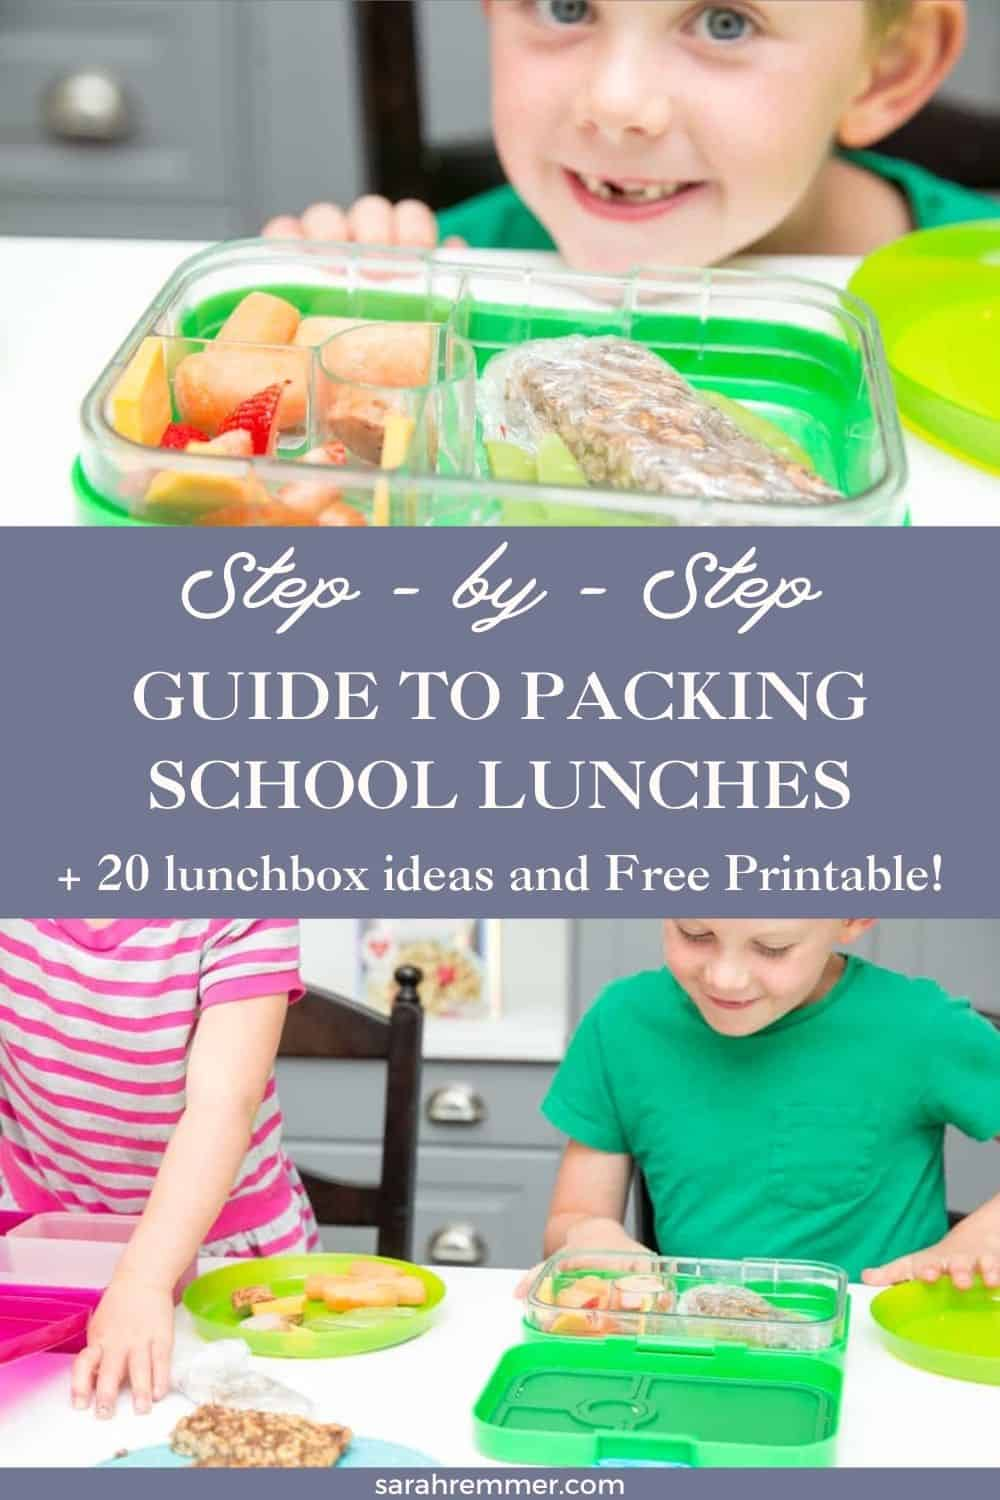 Anxious about packing school lunches? Don't be. Here's a step-by-step guide, plus a free printable with 20 healthy lunchbox ideas!